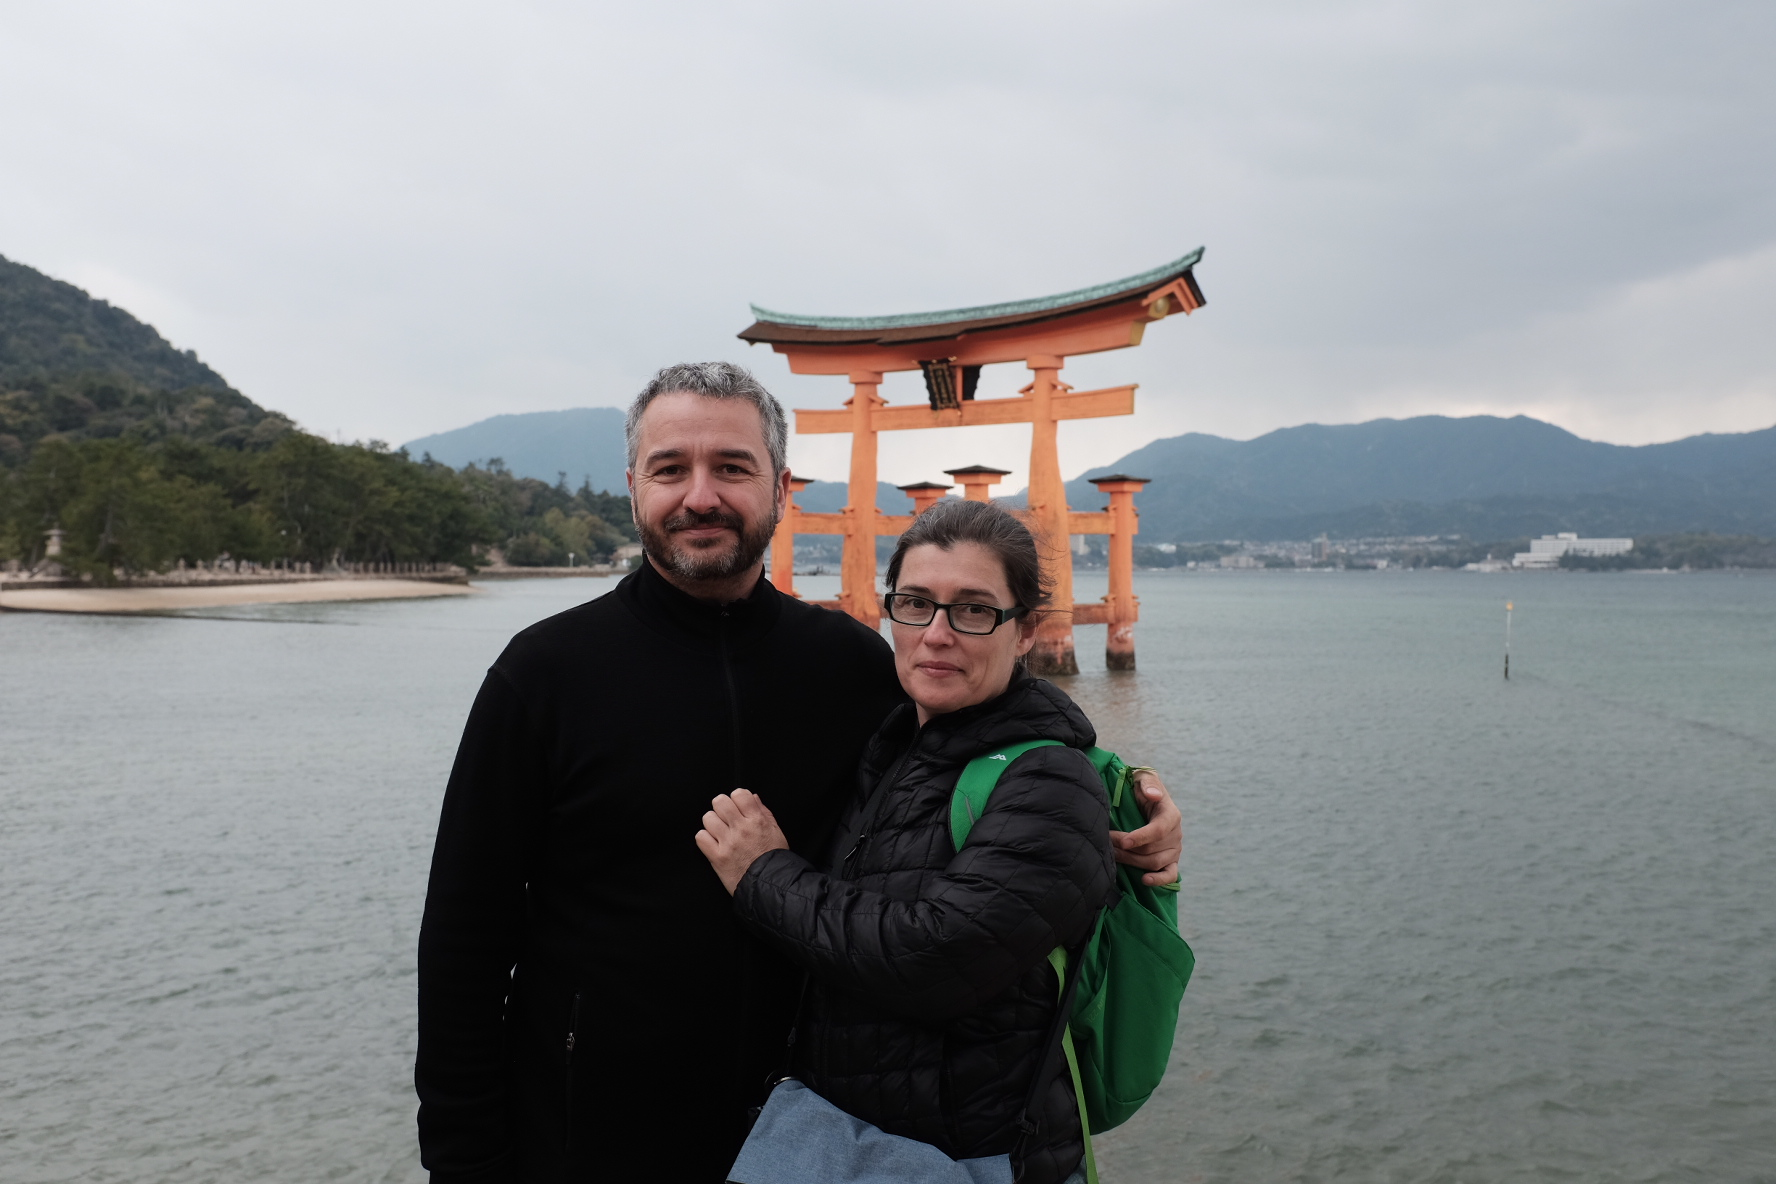 Super Sake Boy and Blossomkitty standing in front of the floating Tori at Utsukushima in Hiroshima